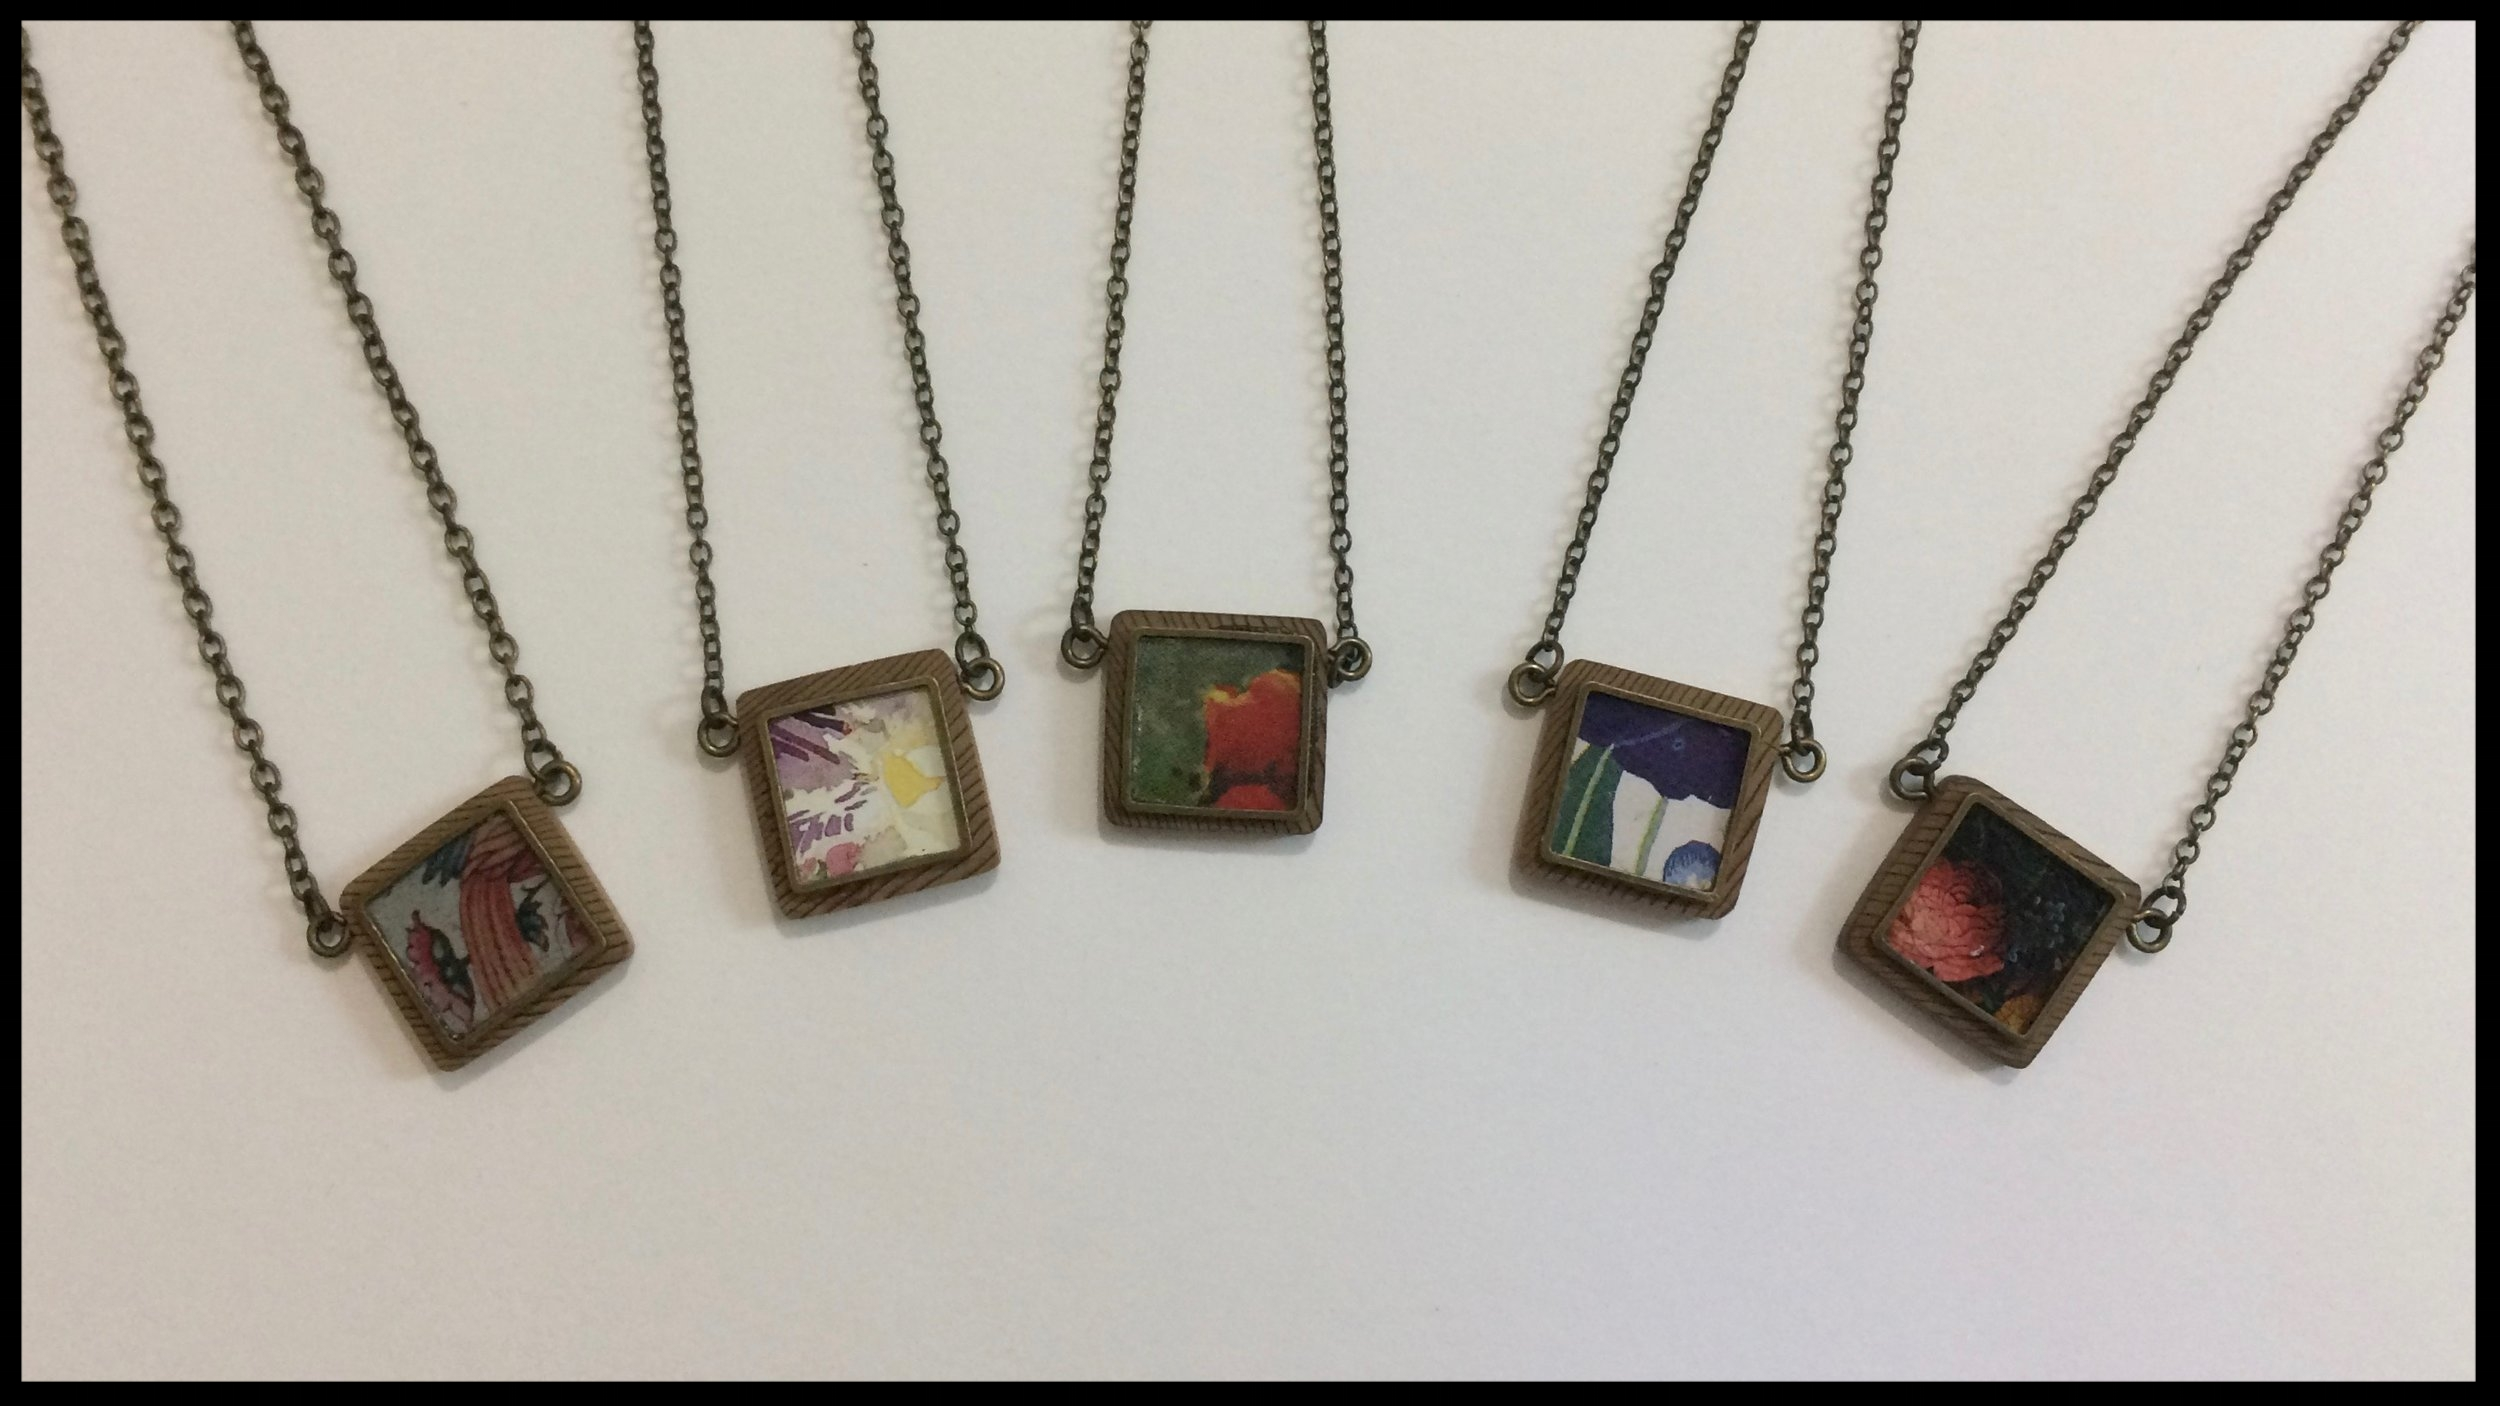 Square - Tin, metal and wood necklaces